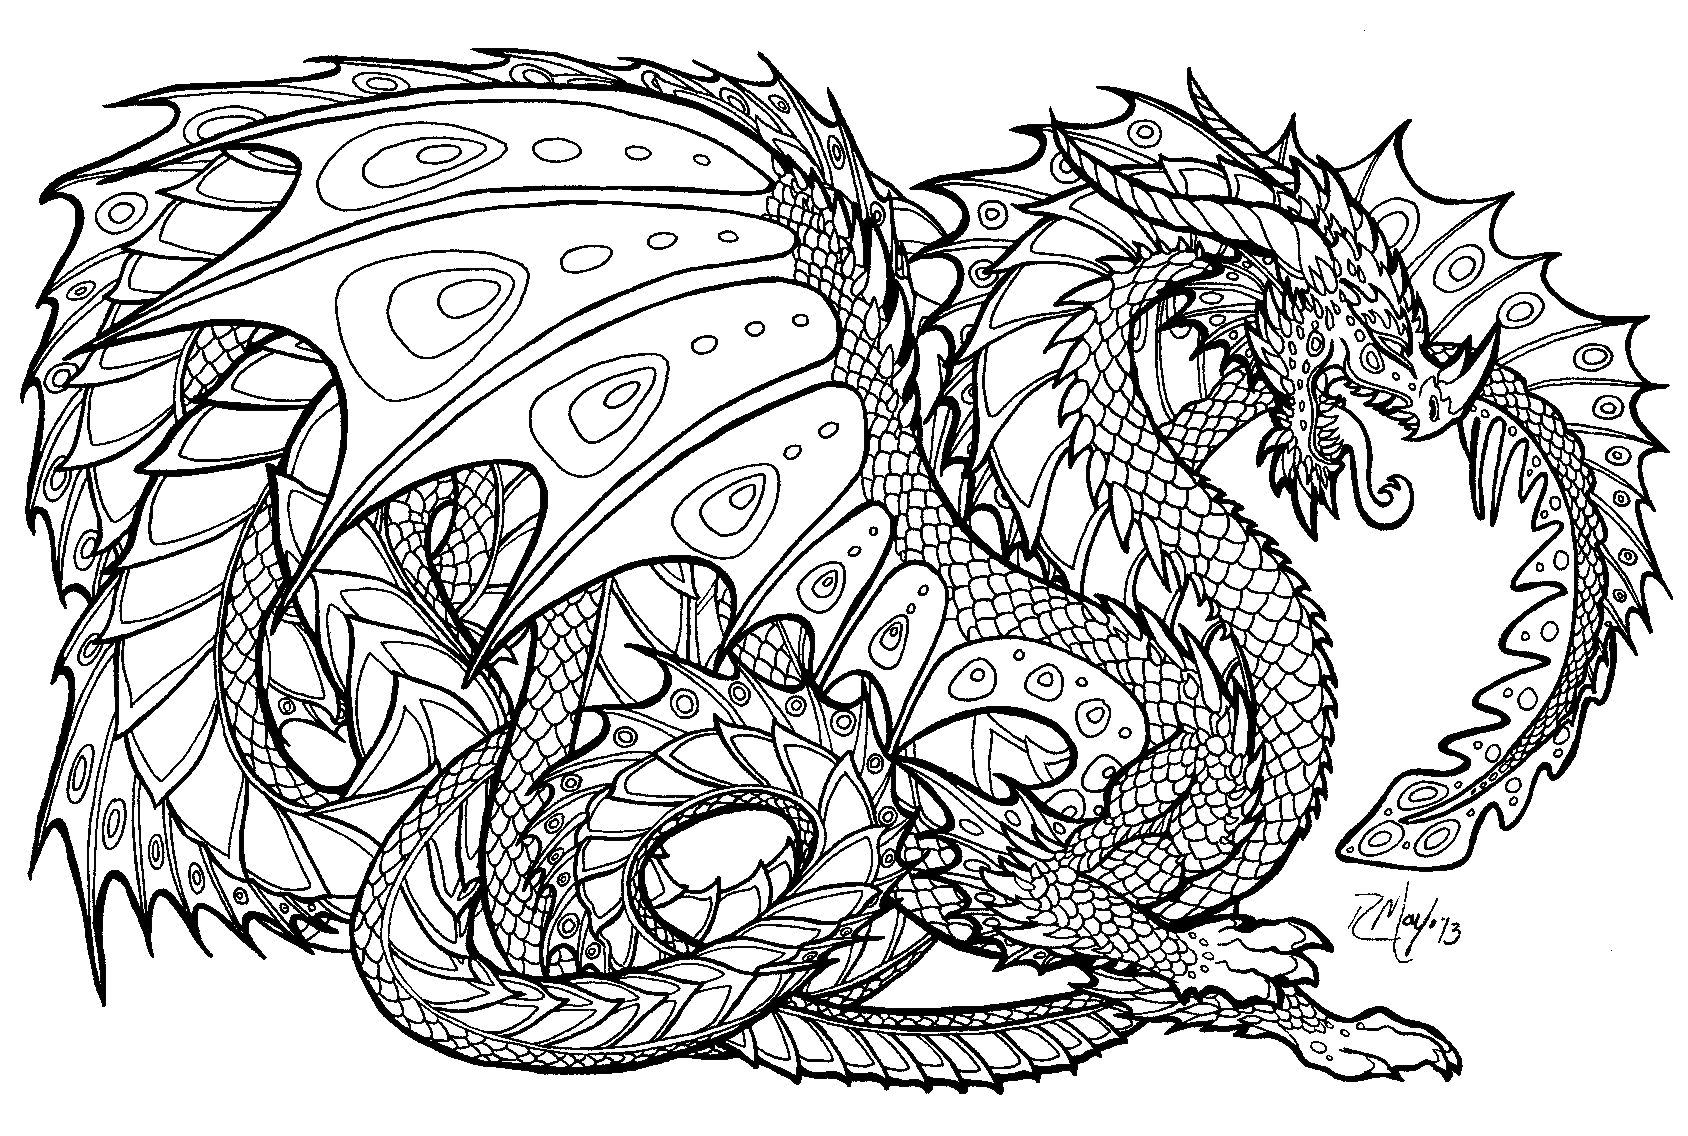 Detailed Coloring Pages For Adults Dragon